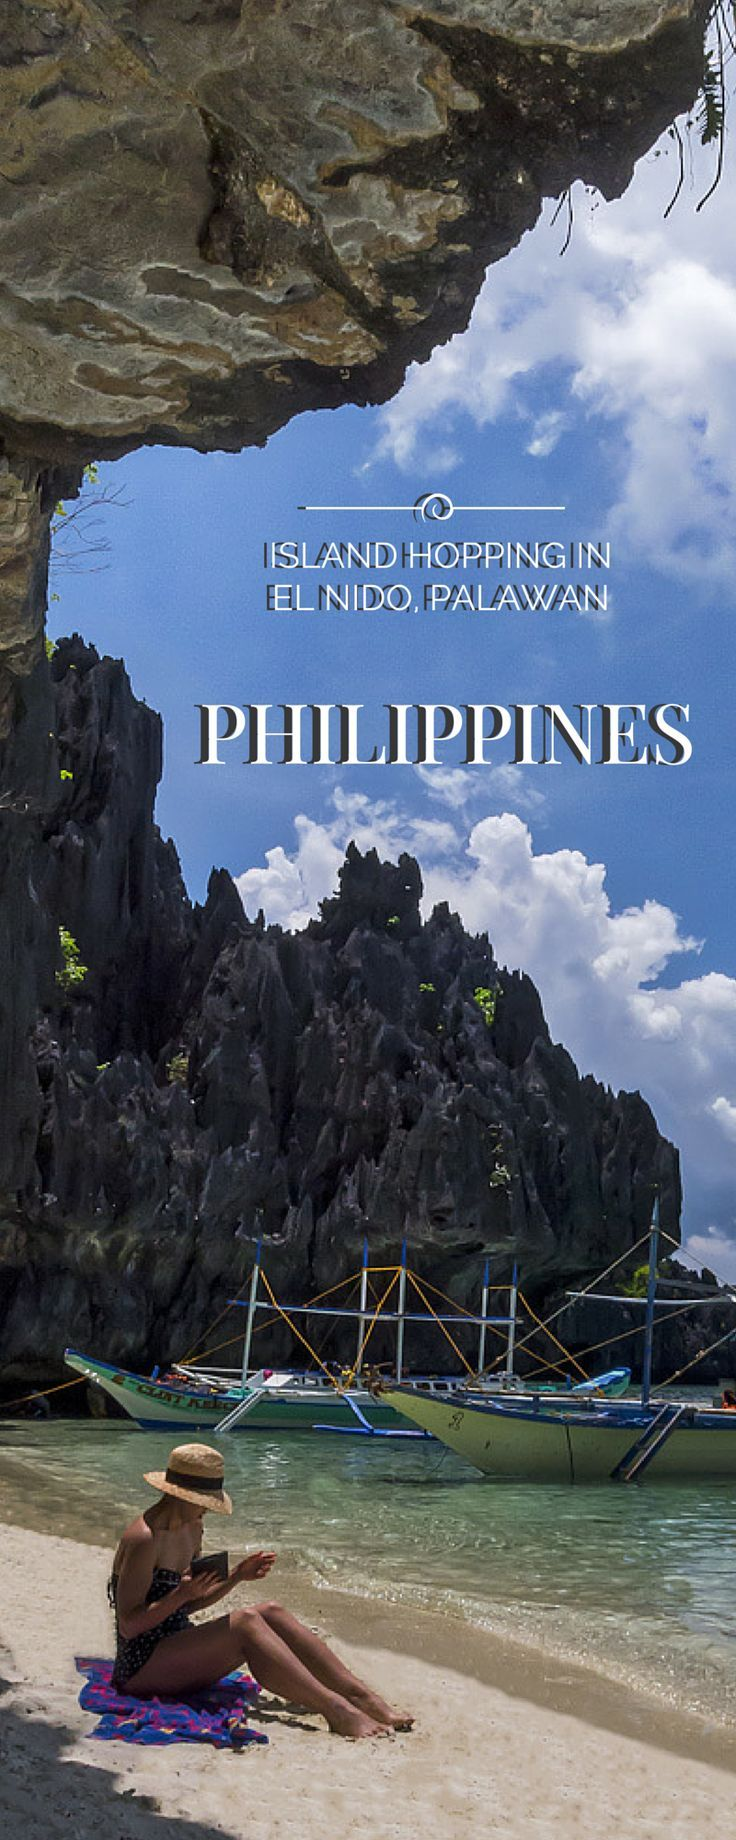 Just look at these rock formations. Are they unusual and captivating, or what? #ElNido #Palawan #Philippines